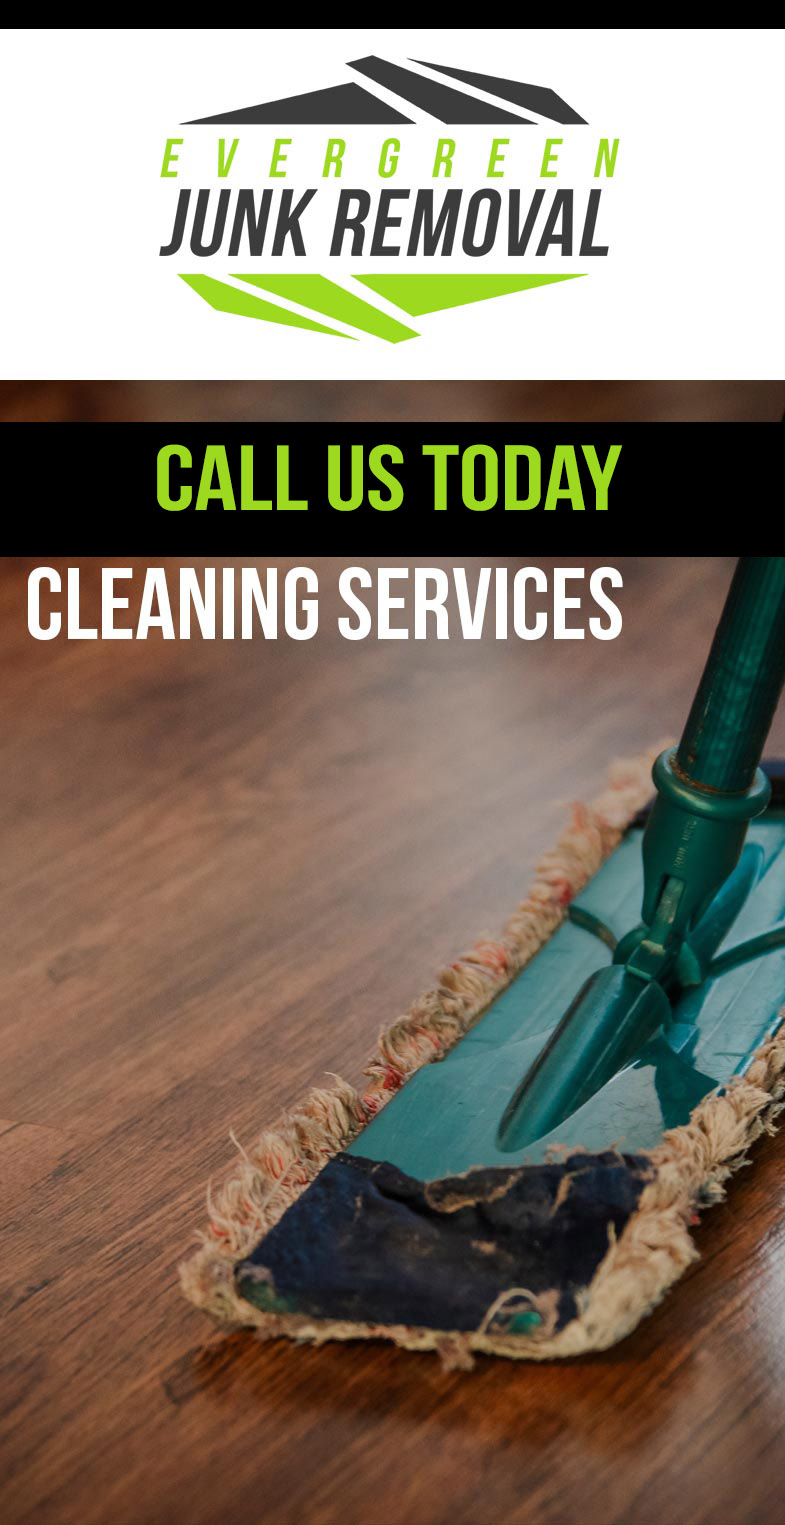 Boulevard Gardens Cleaning Company